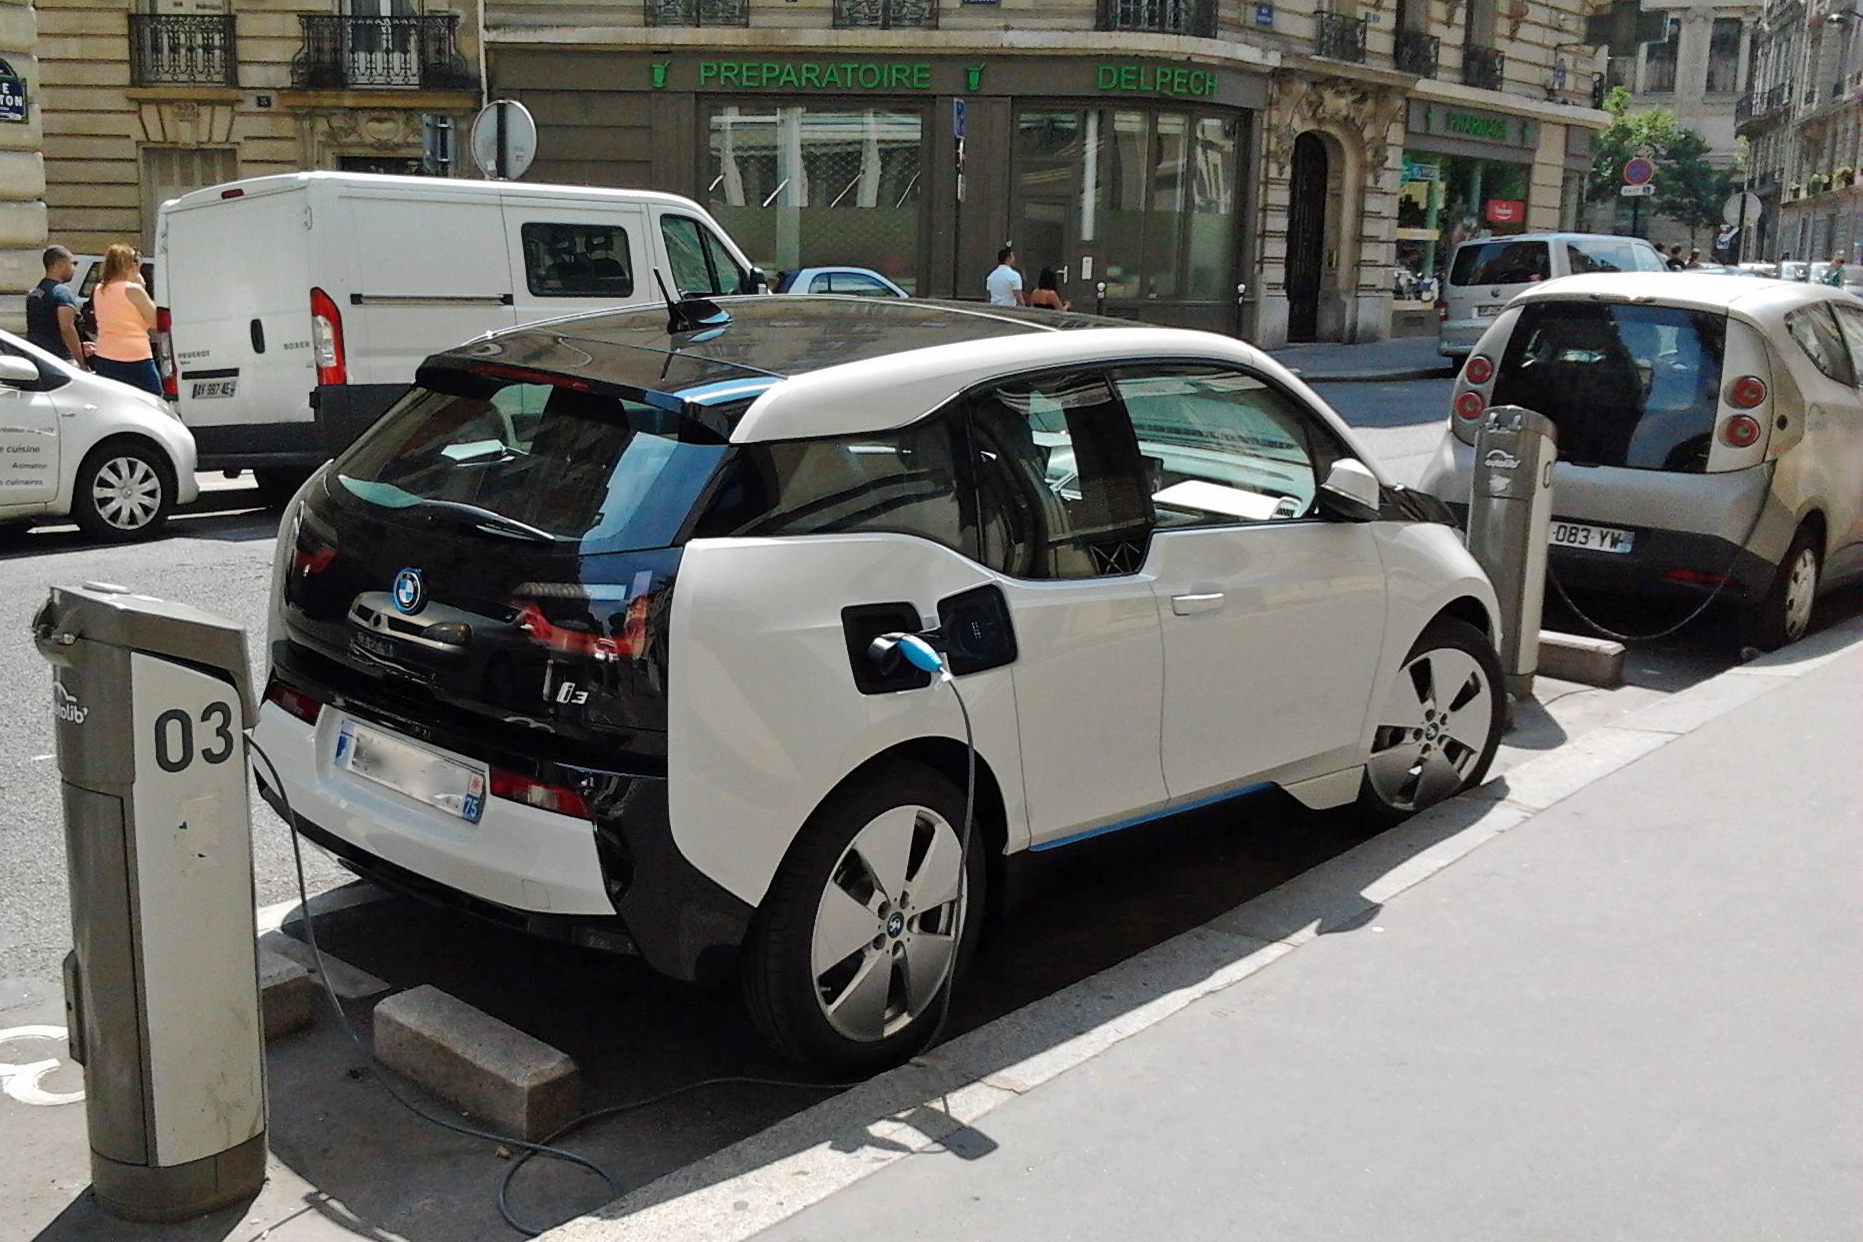 Worksheet. FileBMW i3 charging on Autolib station in Paris trimmedjpg